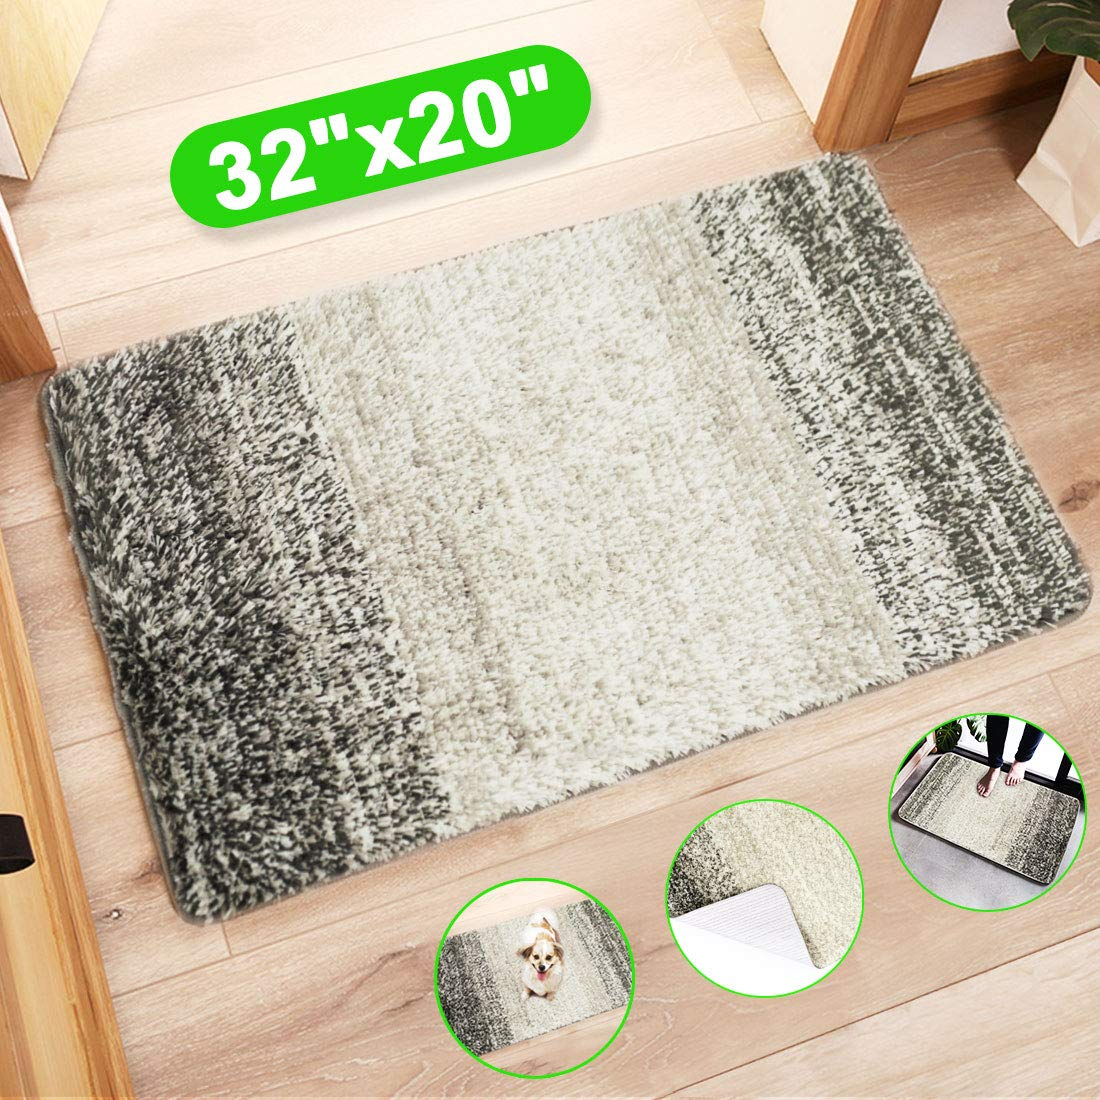 "MAIHOMETA Indoor Doormat Front Door Mat, Super Absorbent Entrance Door Rug, Non Slip Back Door Mats Indoor, Soft Entry Rugs Inside Machine Washable Door Carpet for Entryway (32""x20"", Grey/Gray)"